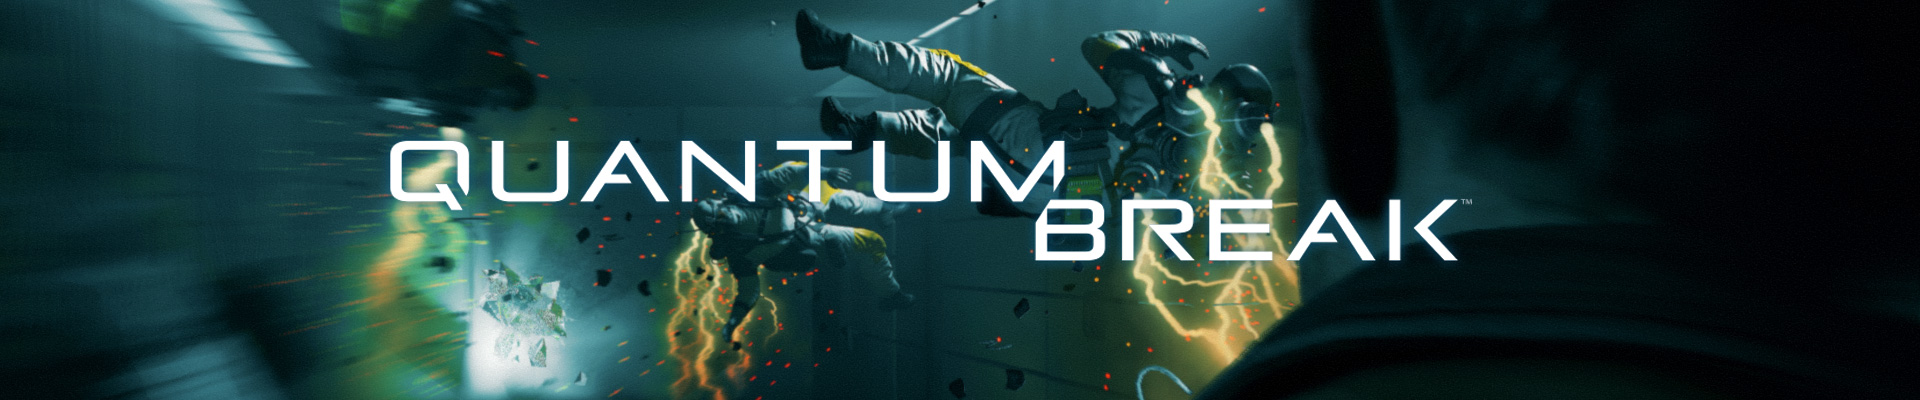 Thoughts on: Quantum Break